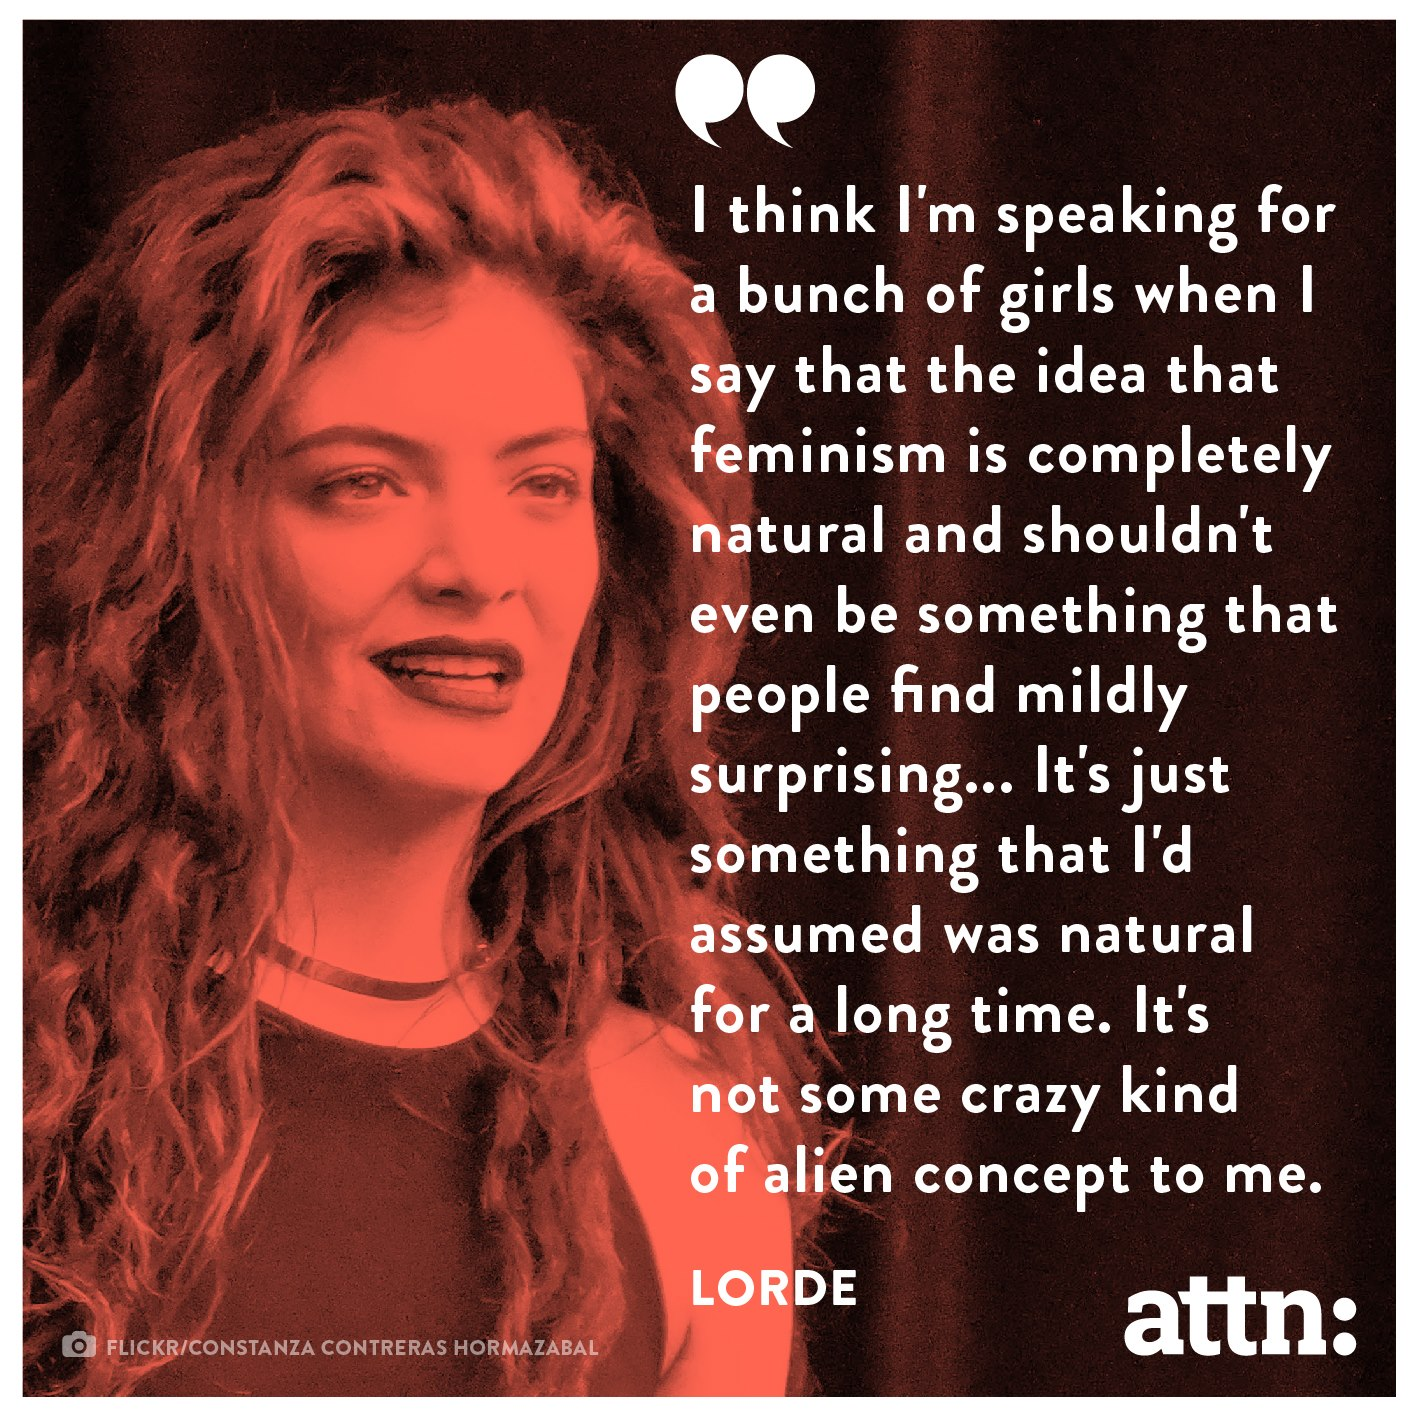 lorde on feminism – life changing meme